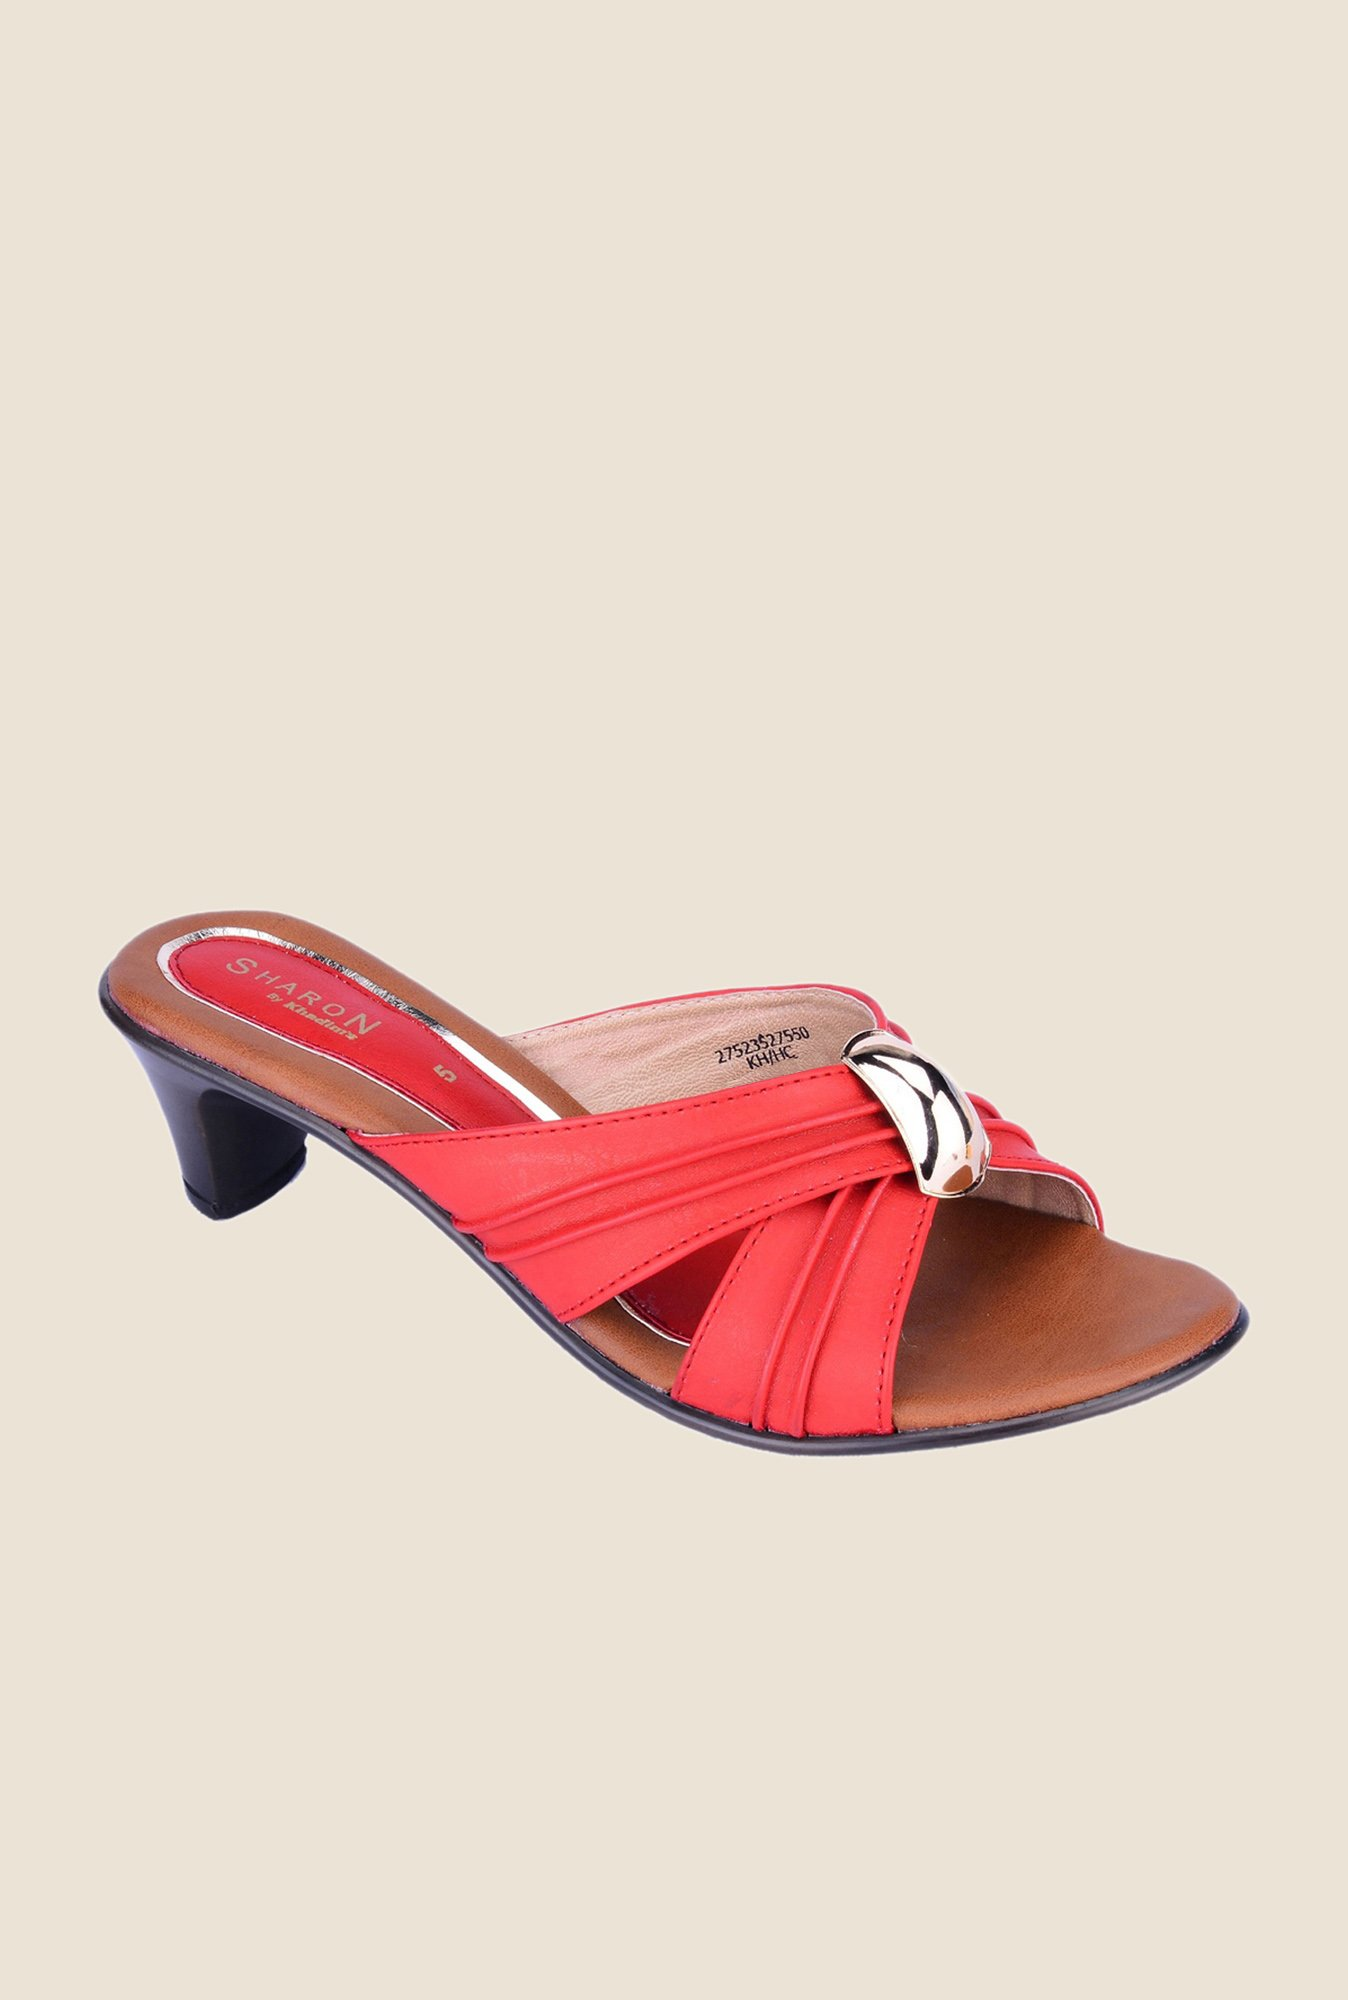 Khadim's Sharon Red & Gold Casual Sandals